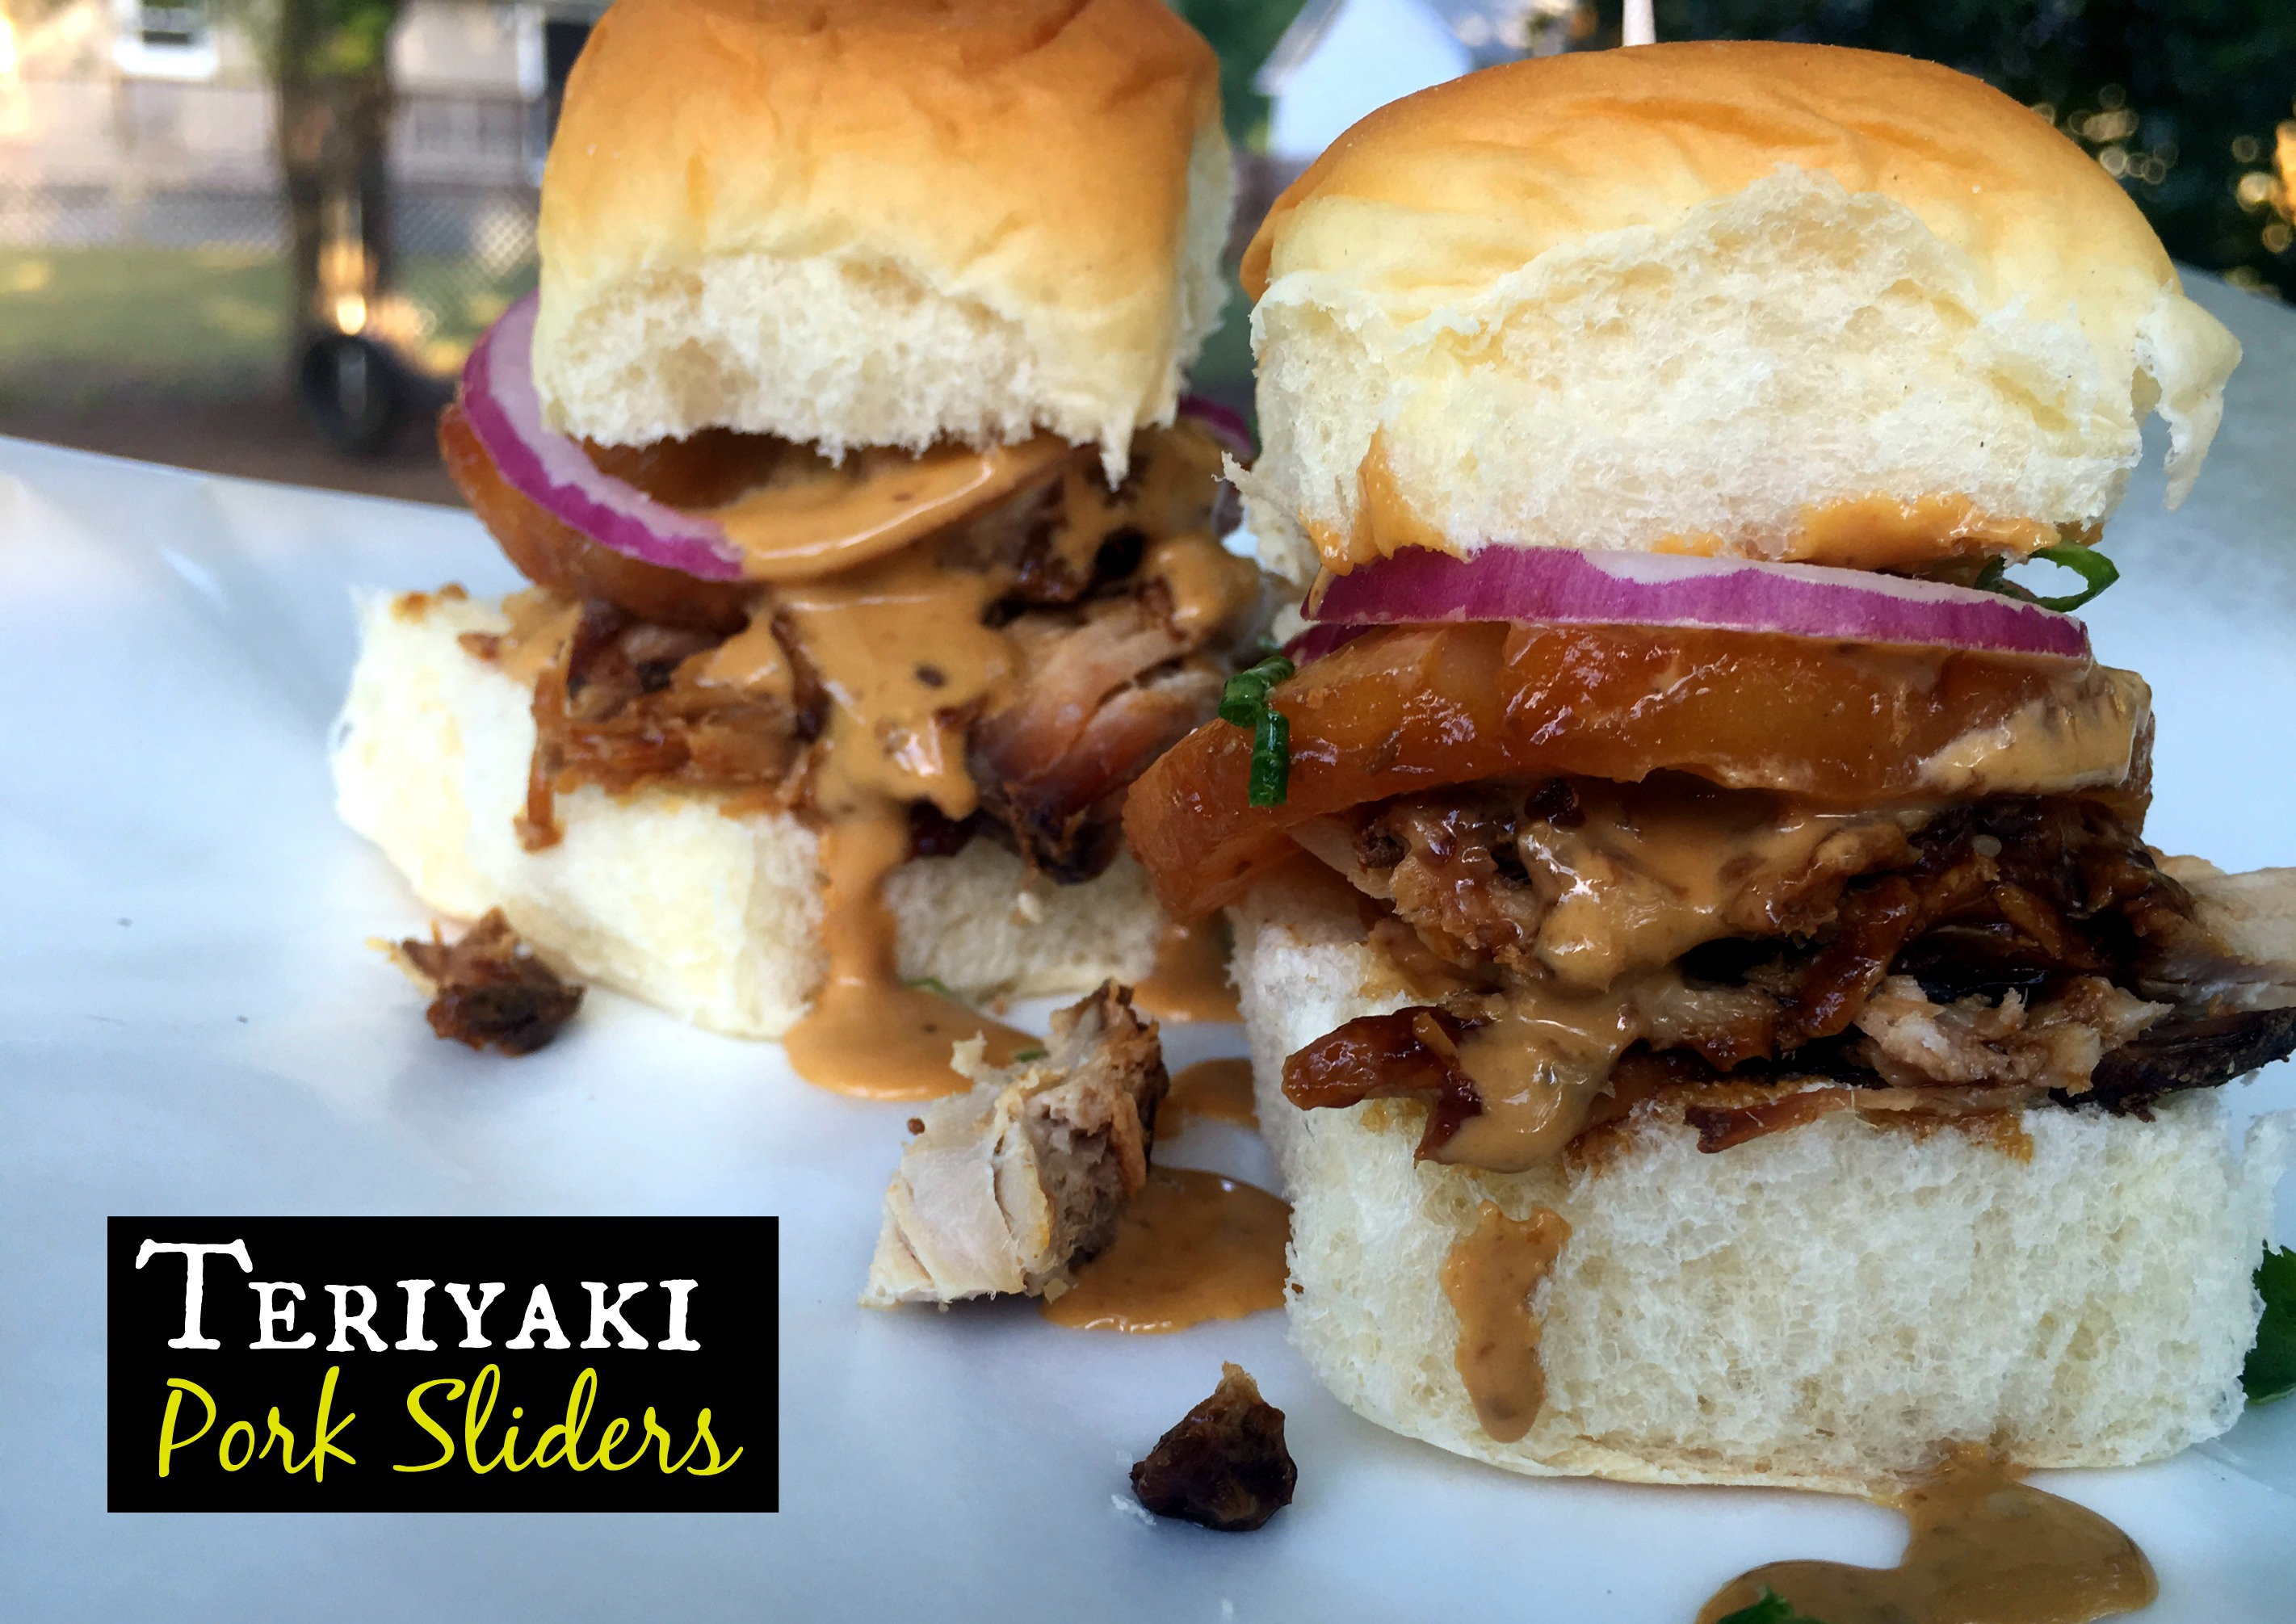 Teriyaki Pork Sliders